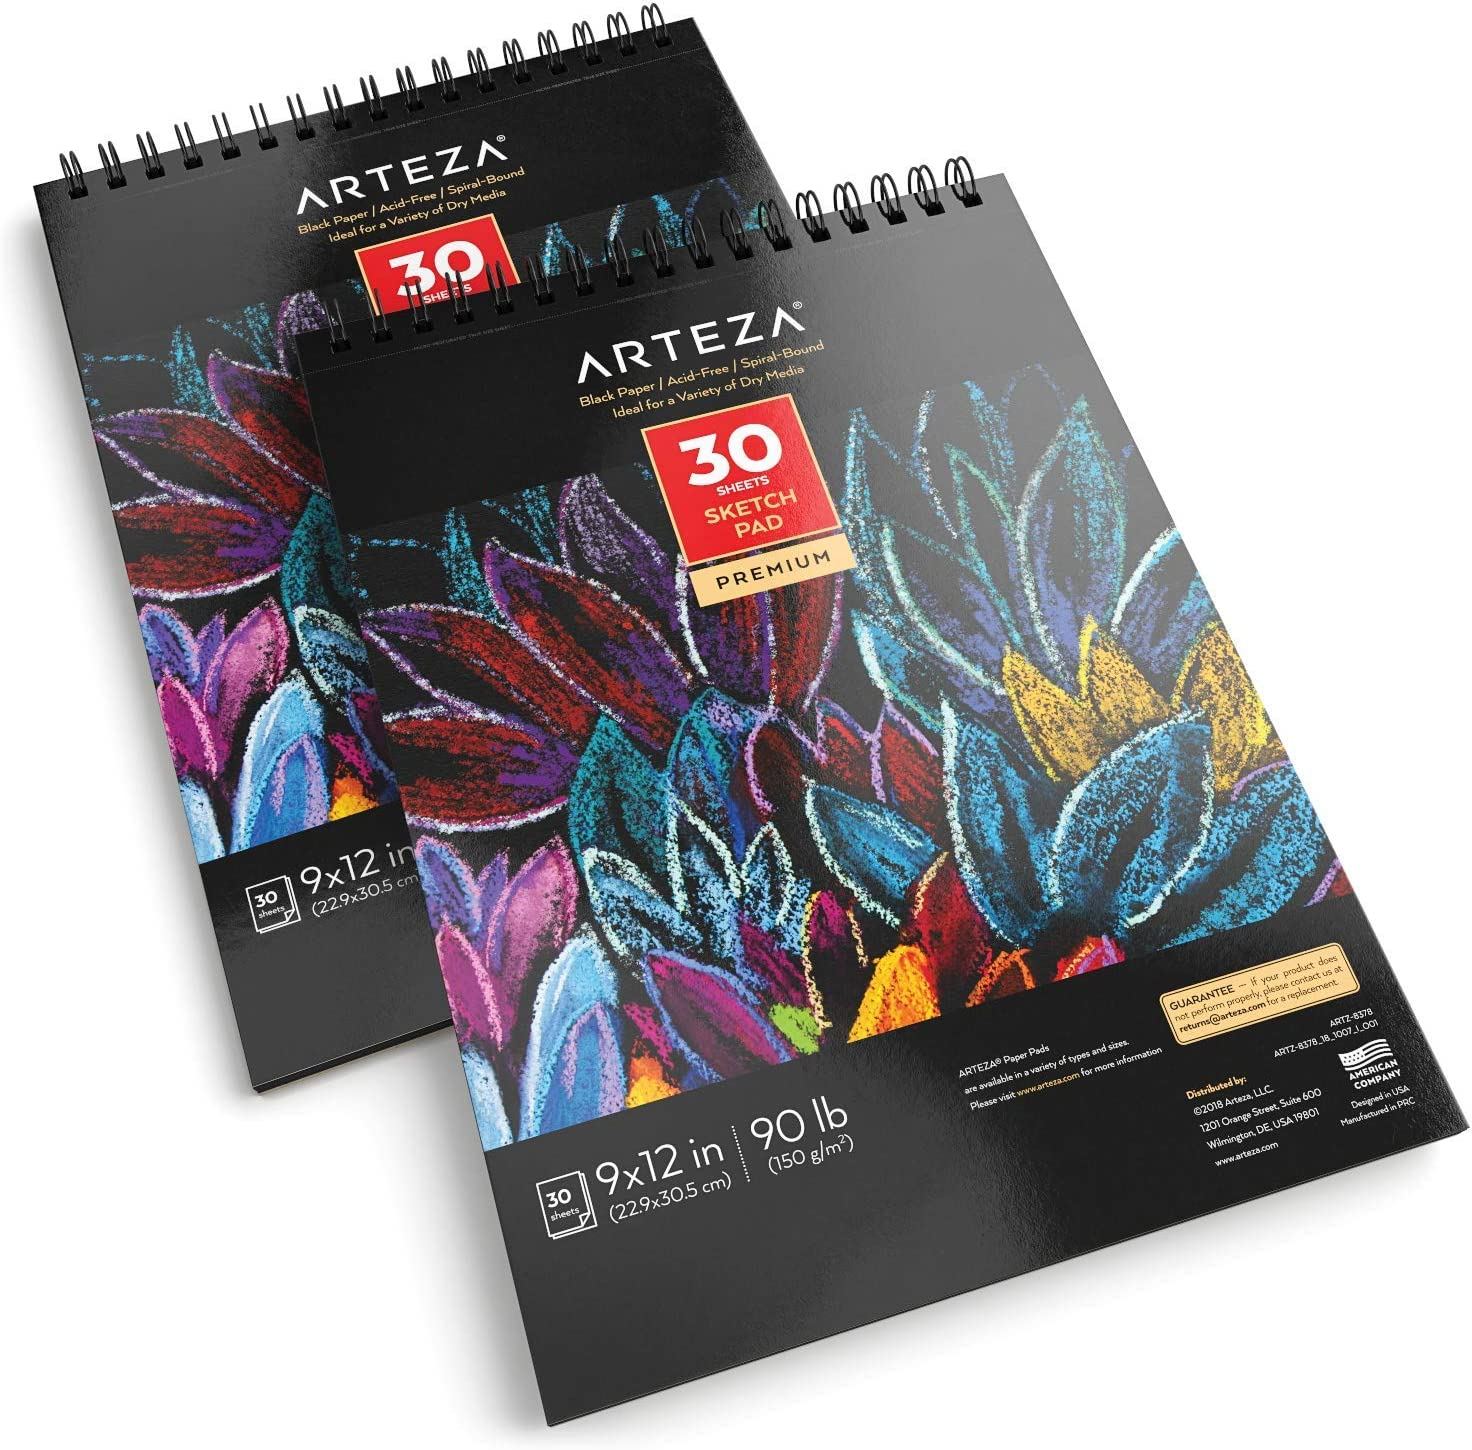 """ARTEZA 9X12"""" Black Sketch Pad, Pack of 2, 60 Sheets (90lb/150gsm), 30 Sheets Each, Spiral-Bound, Heavyweight Paper, Perfect for Graphite & Colored Pencils, Charcoal, Oil Pastels, Gel Pens, Chalk, Ink"""